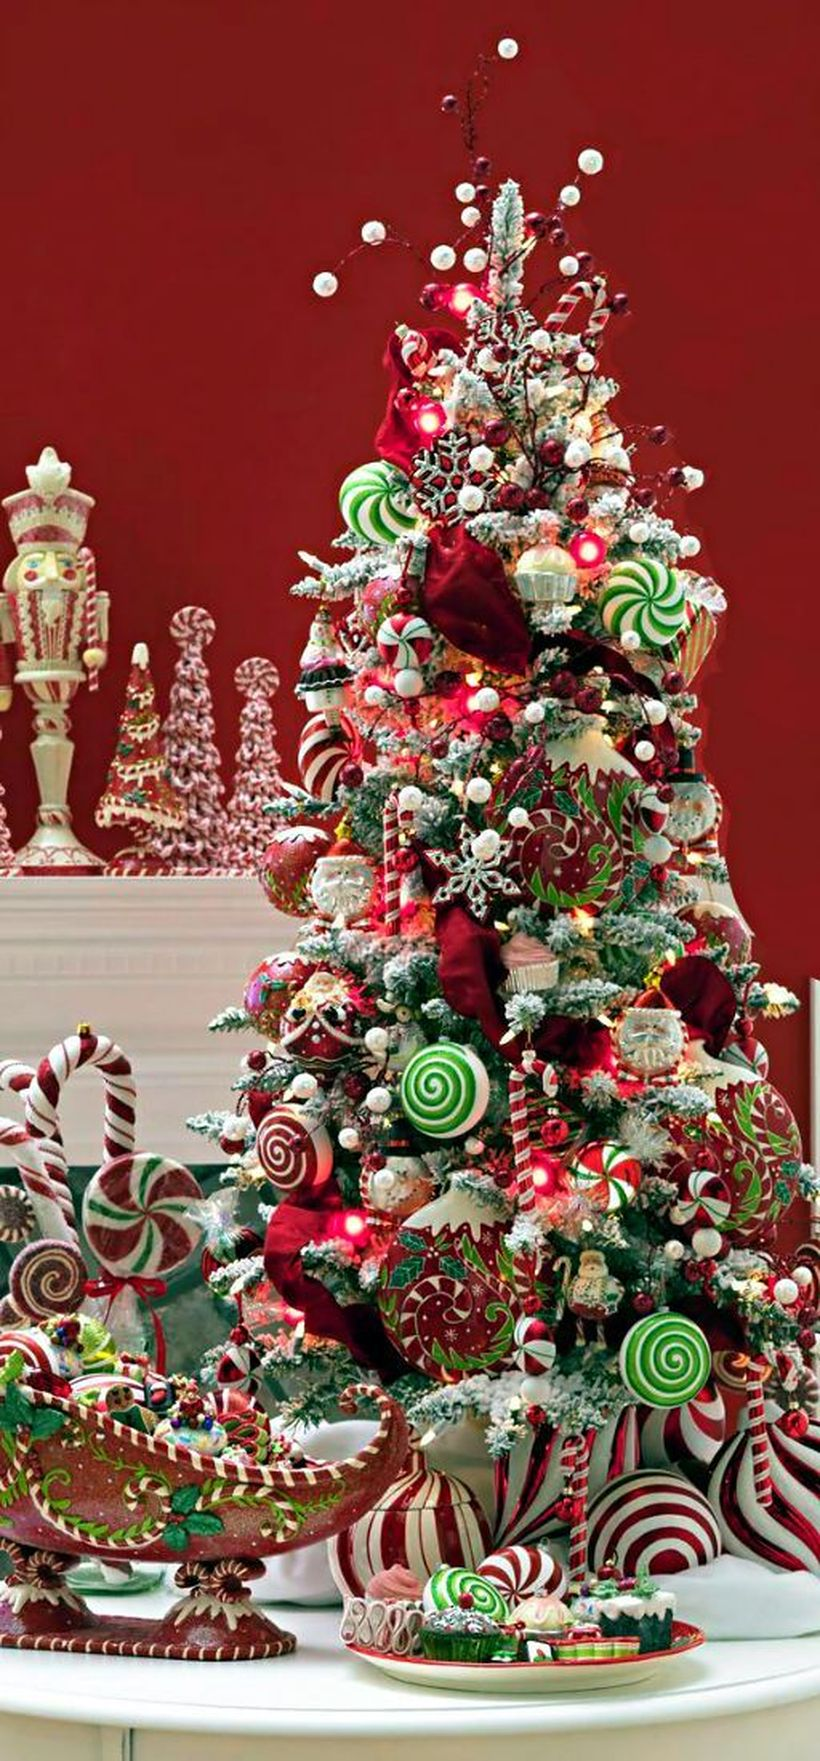 3christmas-tree-decorated-with-candy